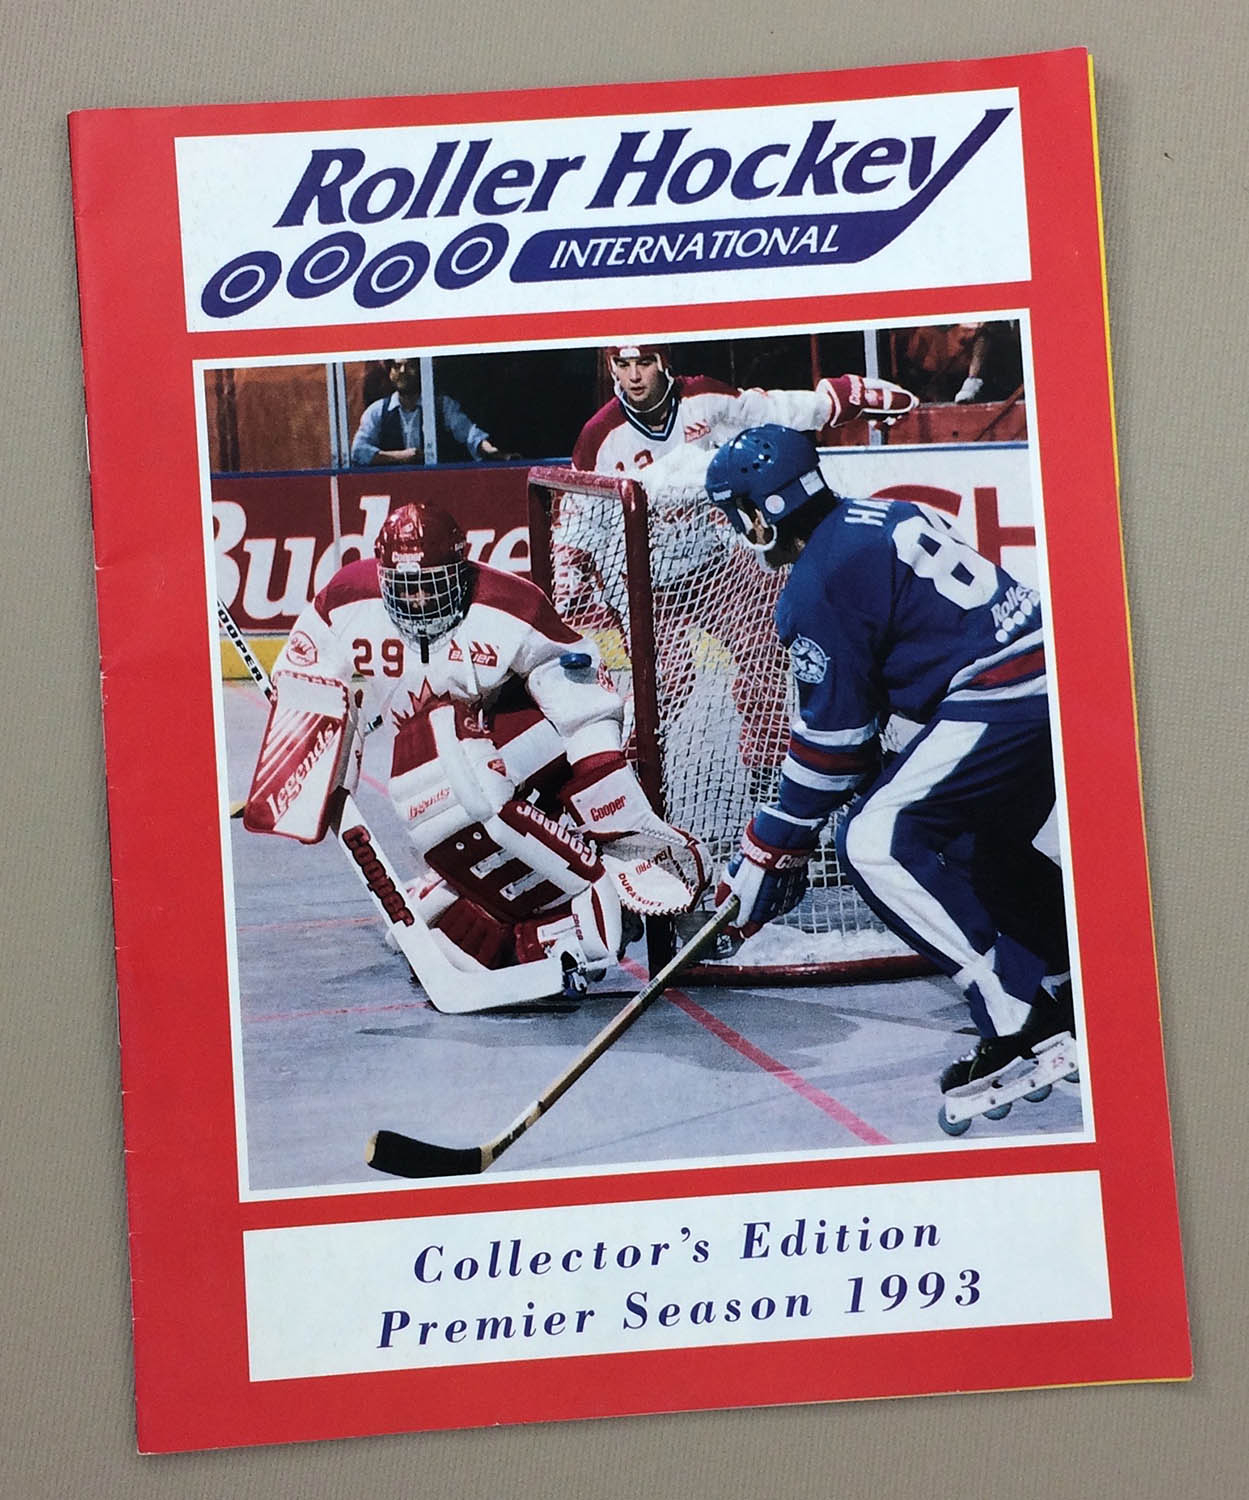 Roller Hockey International Inaugural Yearbook